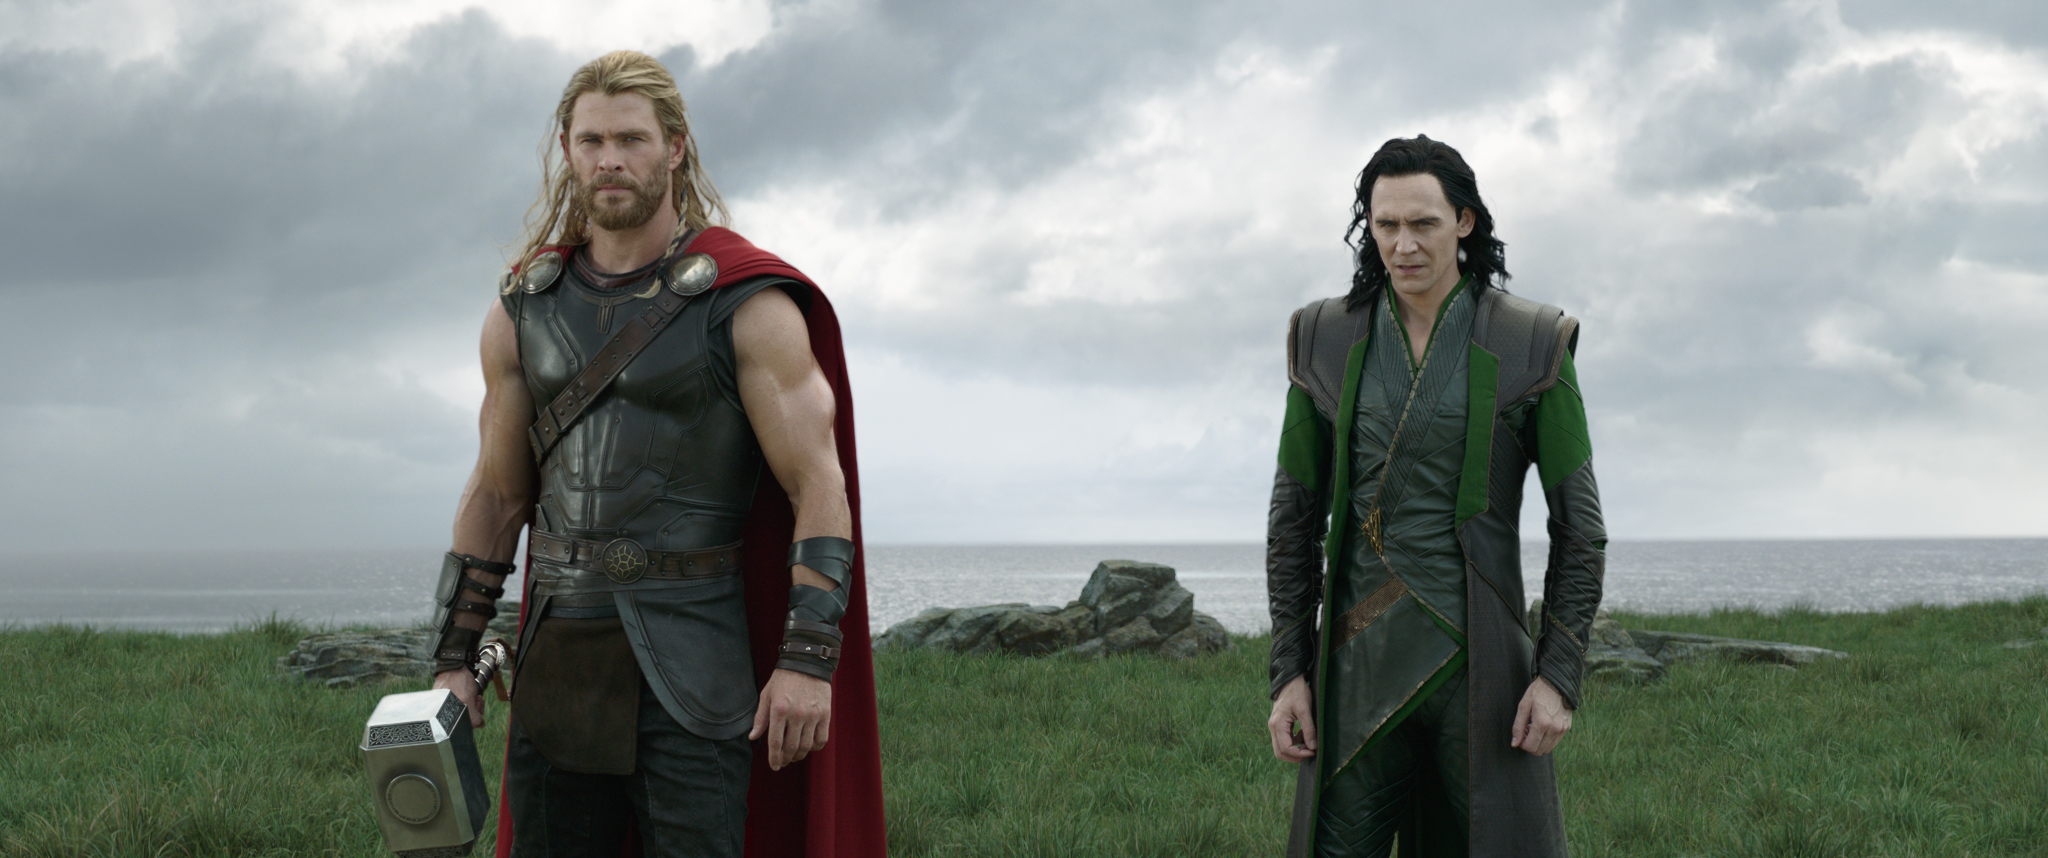 THOR: RAGNAROK - Now Playing in Theatres Everywhere